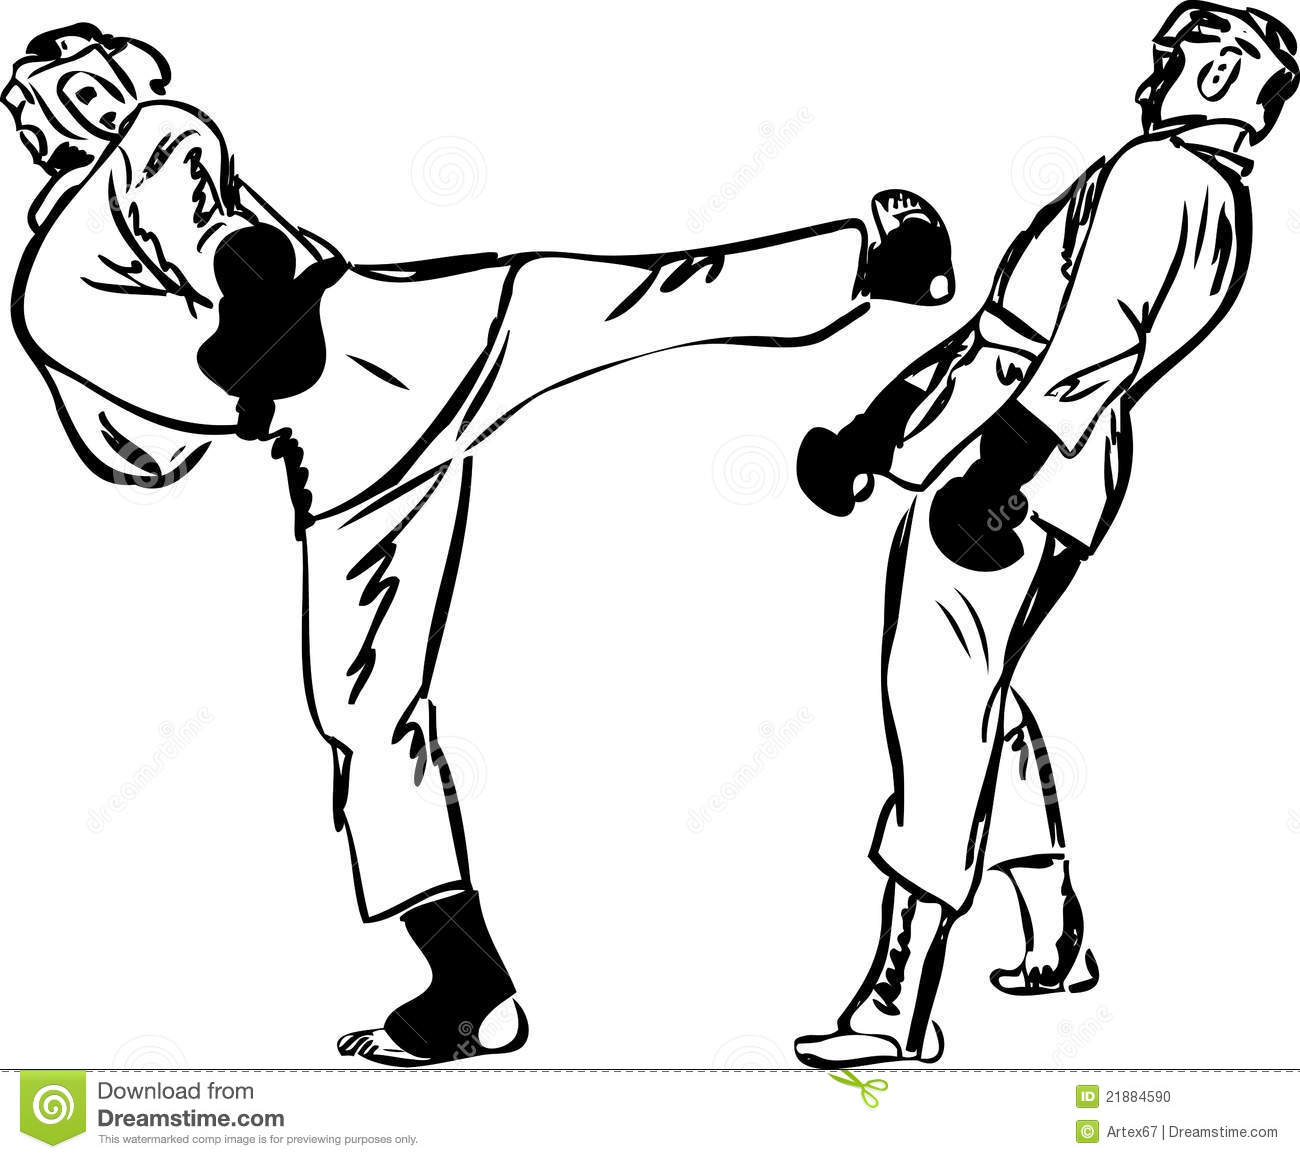 Karate Kyokushinkai Martial Arts Sports Stock Photo